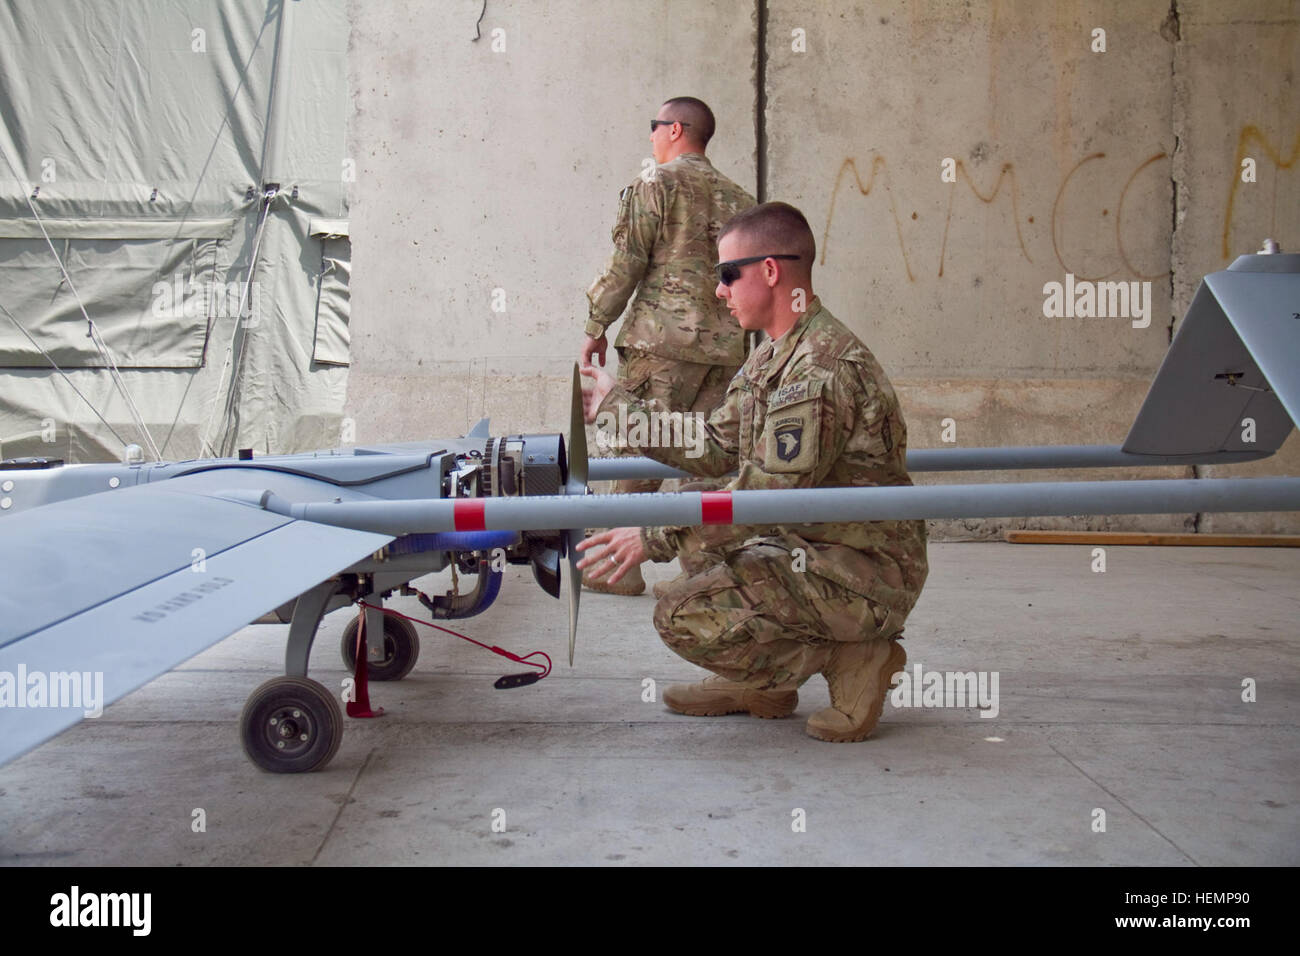 U.S. Army Sgt. Joshua D. Flynn, an unmanned aerial vehicle operator with 4th Brigade Special Troops Battalion, 4th - Stock Image